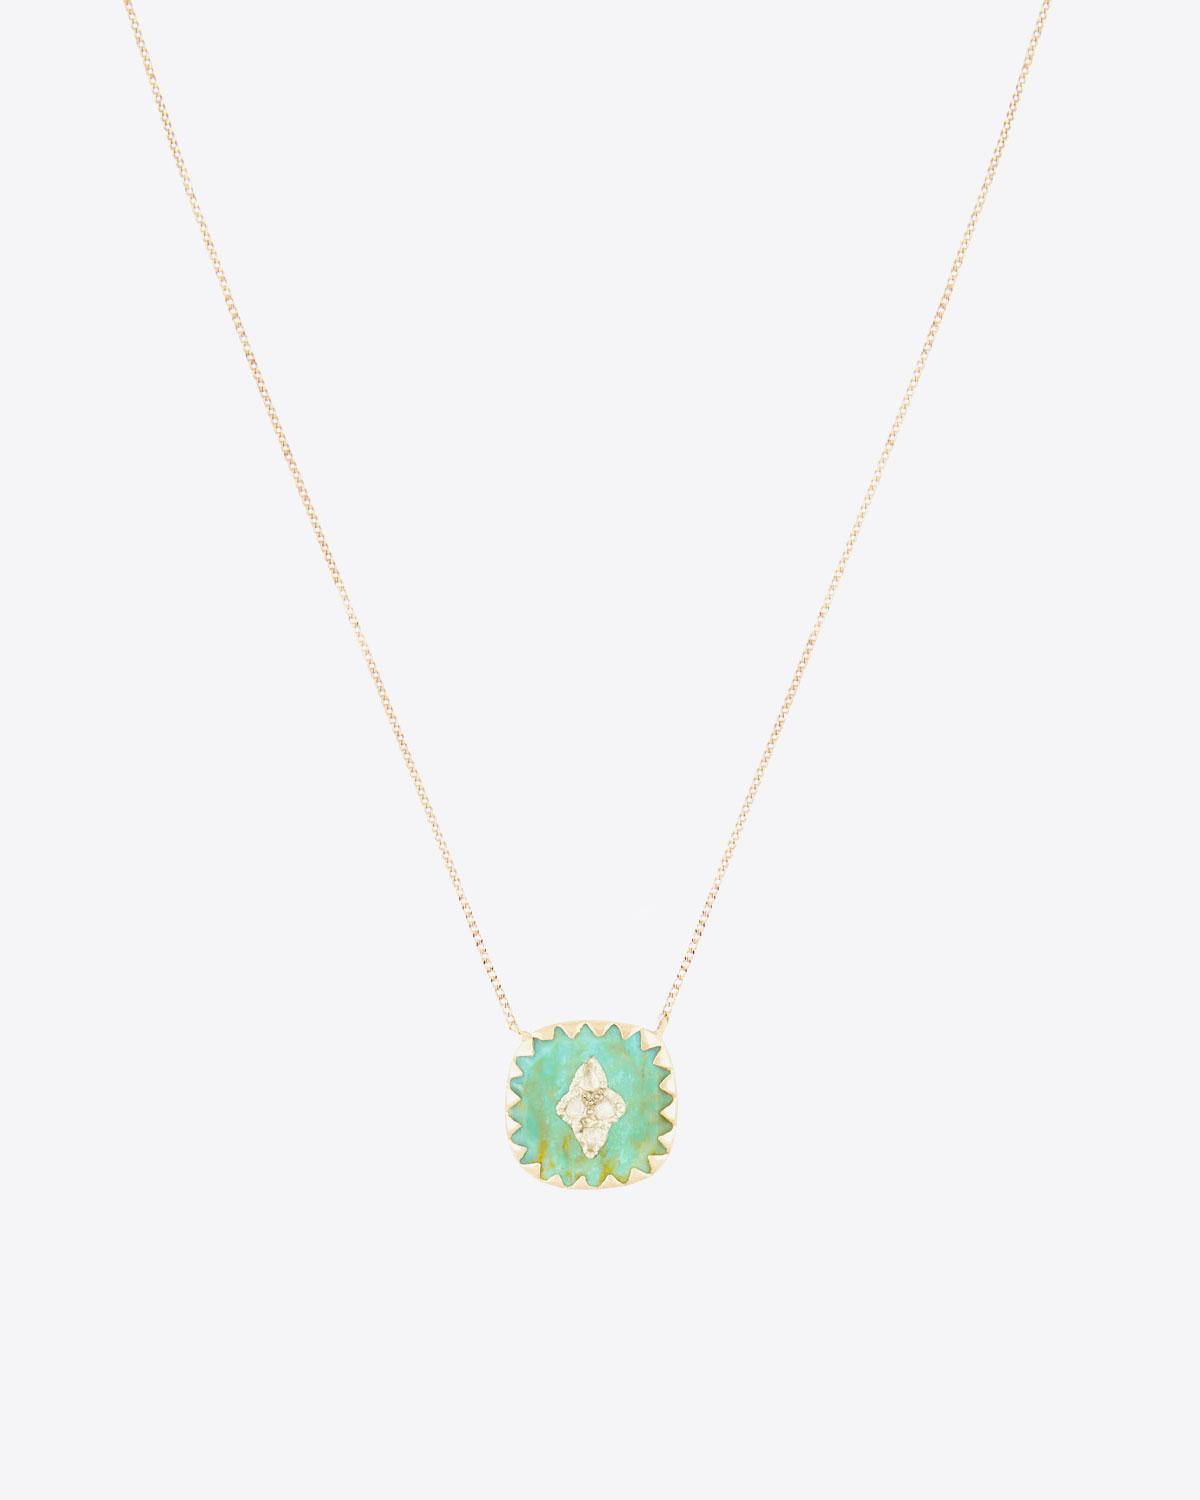 Pascale Monvoisin Pierrot N°2 Collier Turquoise